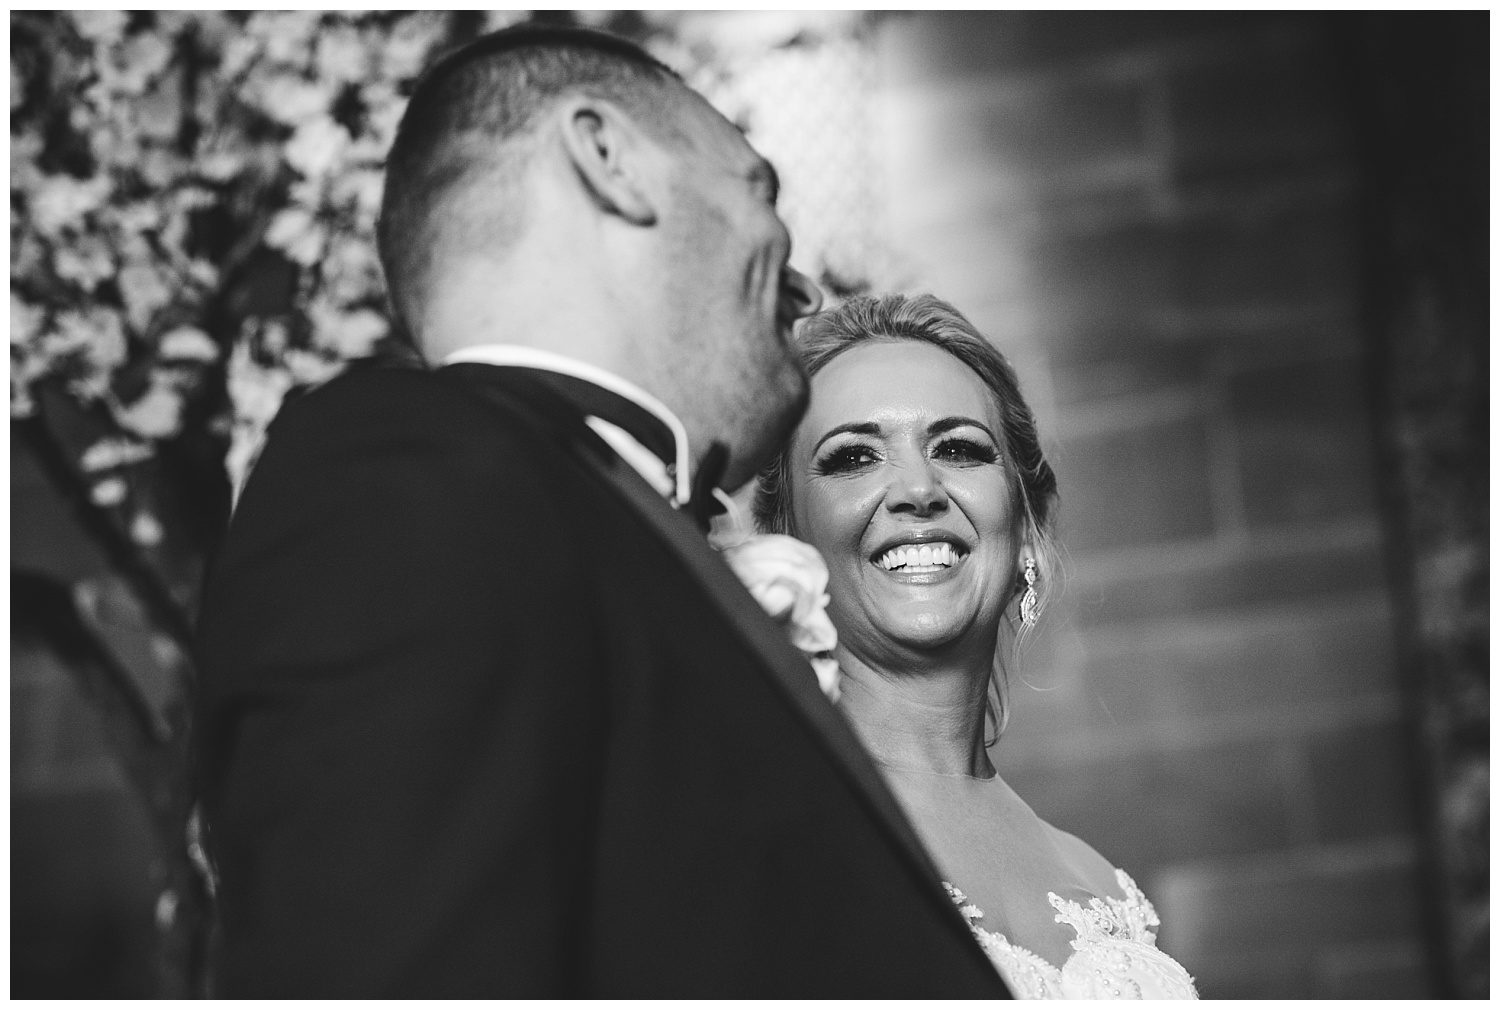 Bride smiling at the groom during their Peckforton Castle wedding ceremony